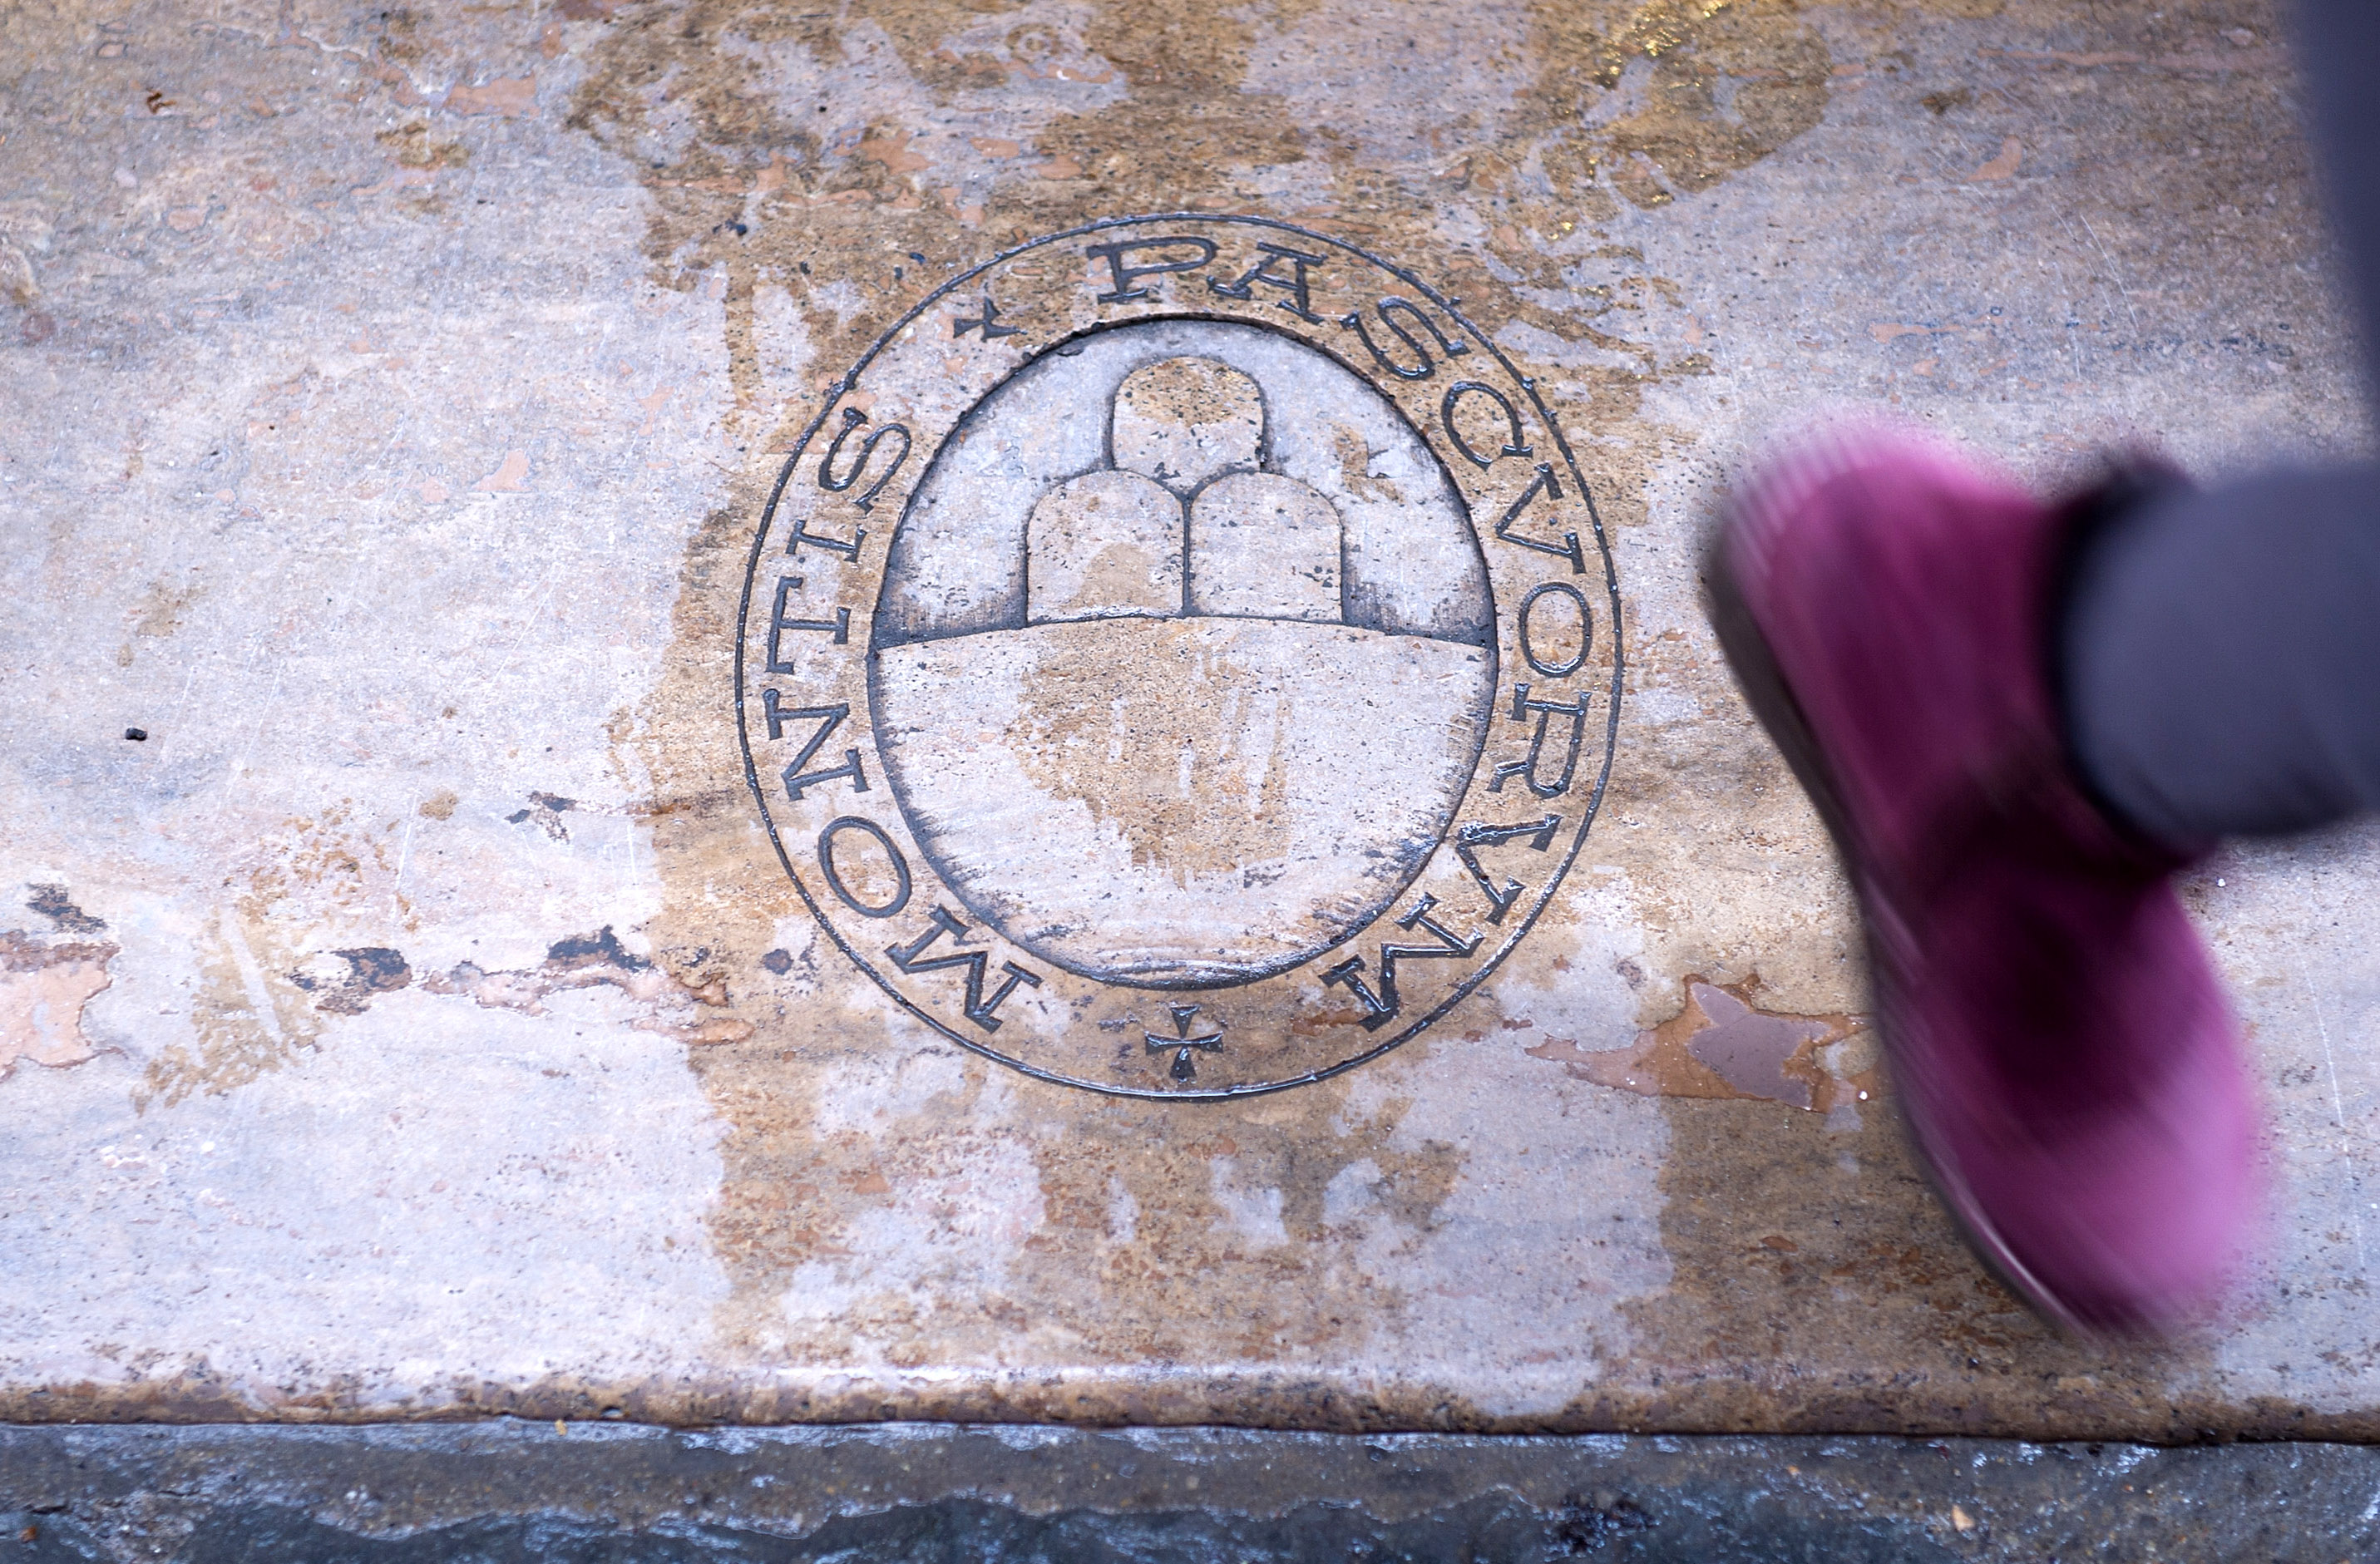 SIENA, ITALY - APRIL 05: A woman steps on a Banca Monte Paschi paving stone whilst leaving a branch in the city centre on April 5, 2013 in Siena, Italy. The Bank of Italy has today ordered former top executives of MPS to pay a total of 5 million Euros (GBP £4.2 million) in fines for lack of controls over risky trades at the bank. (Photo by Marco Secchi/Getty Images)